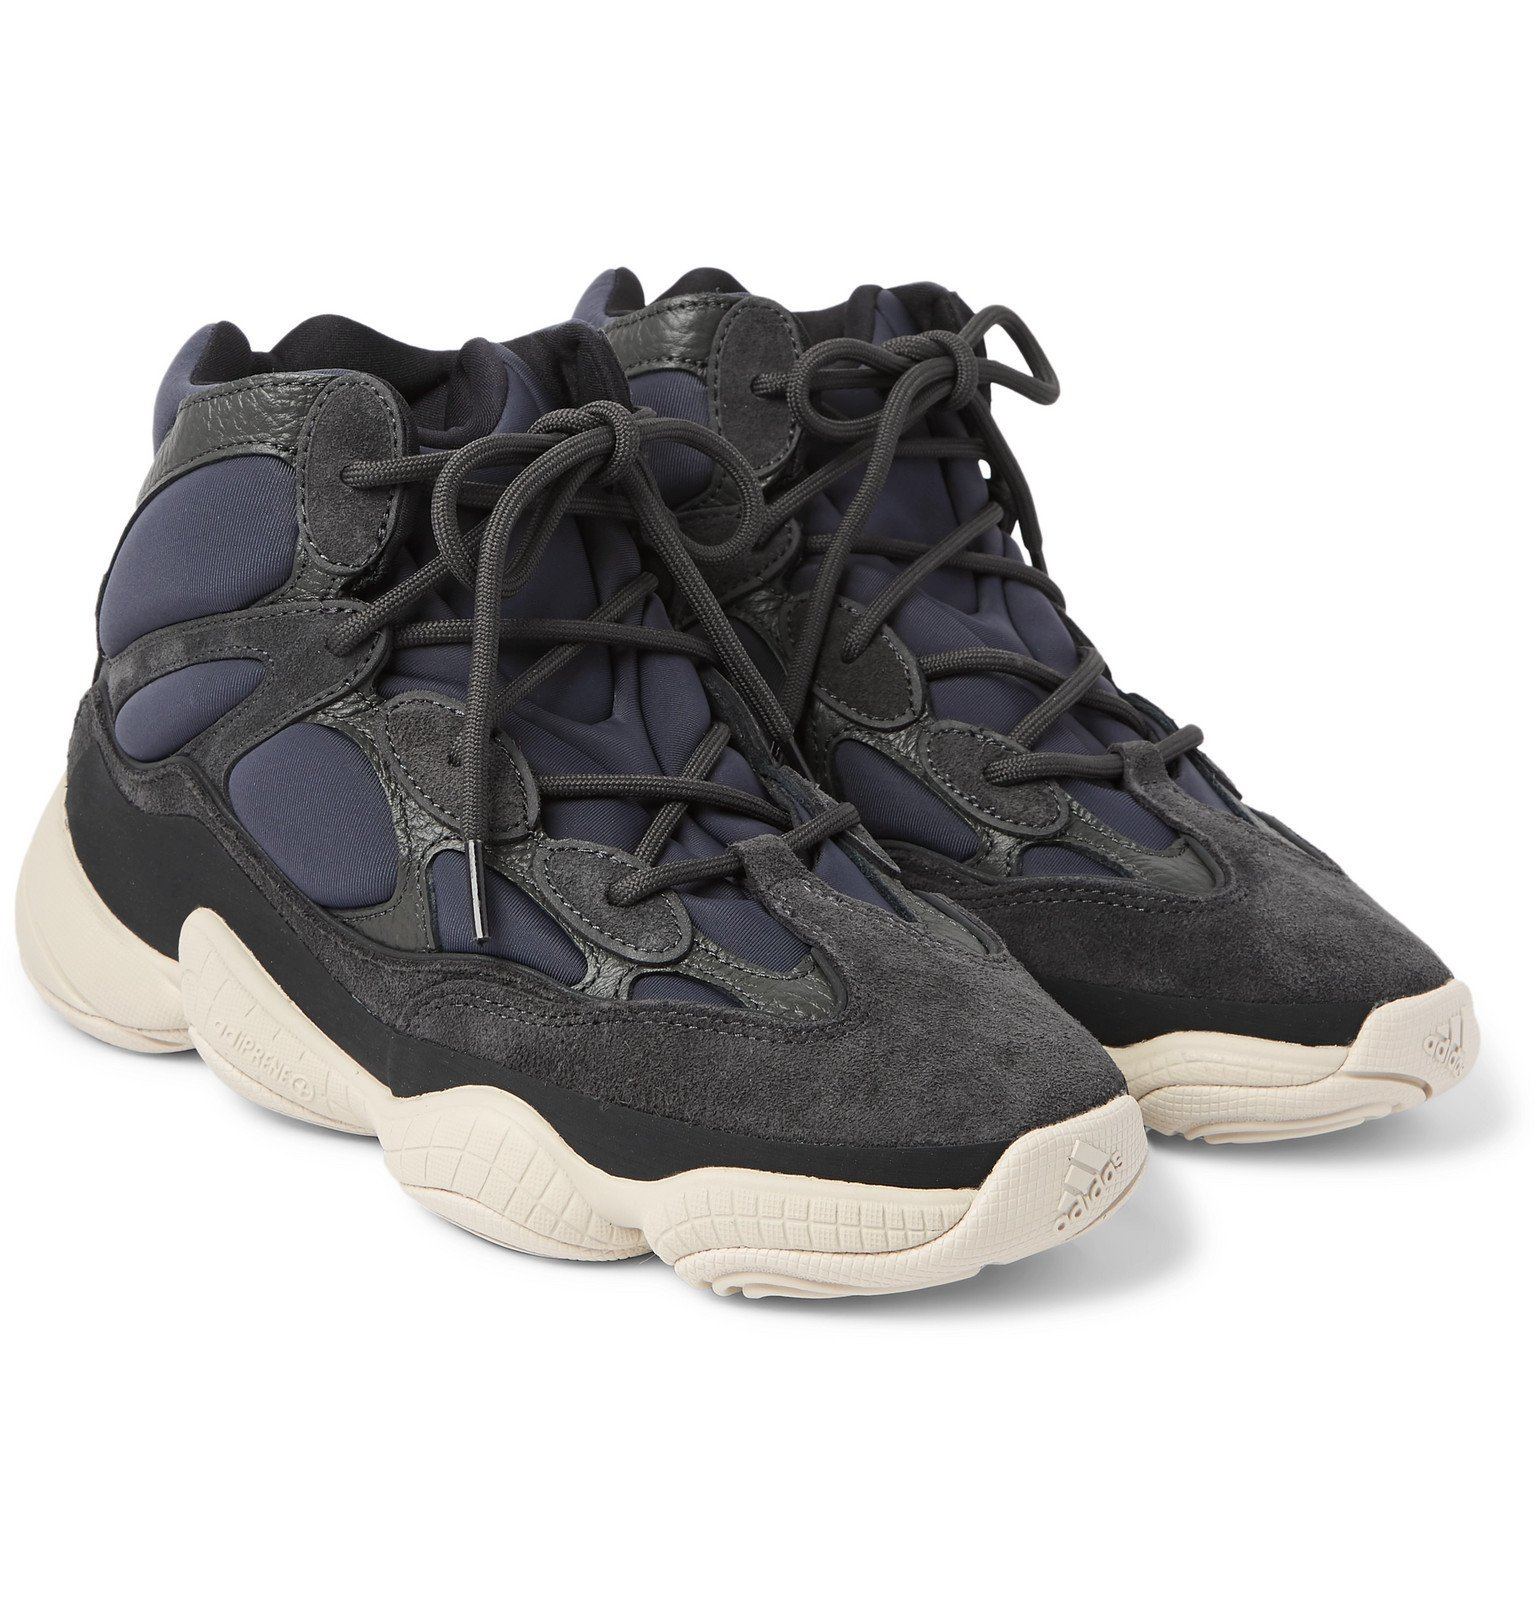 adidas Originals - Yeezy High 500 Neoprene, Suede and Leather High-Top Sneakers - Gray